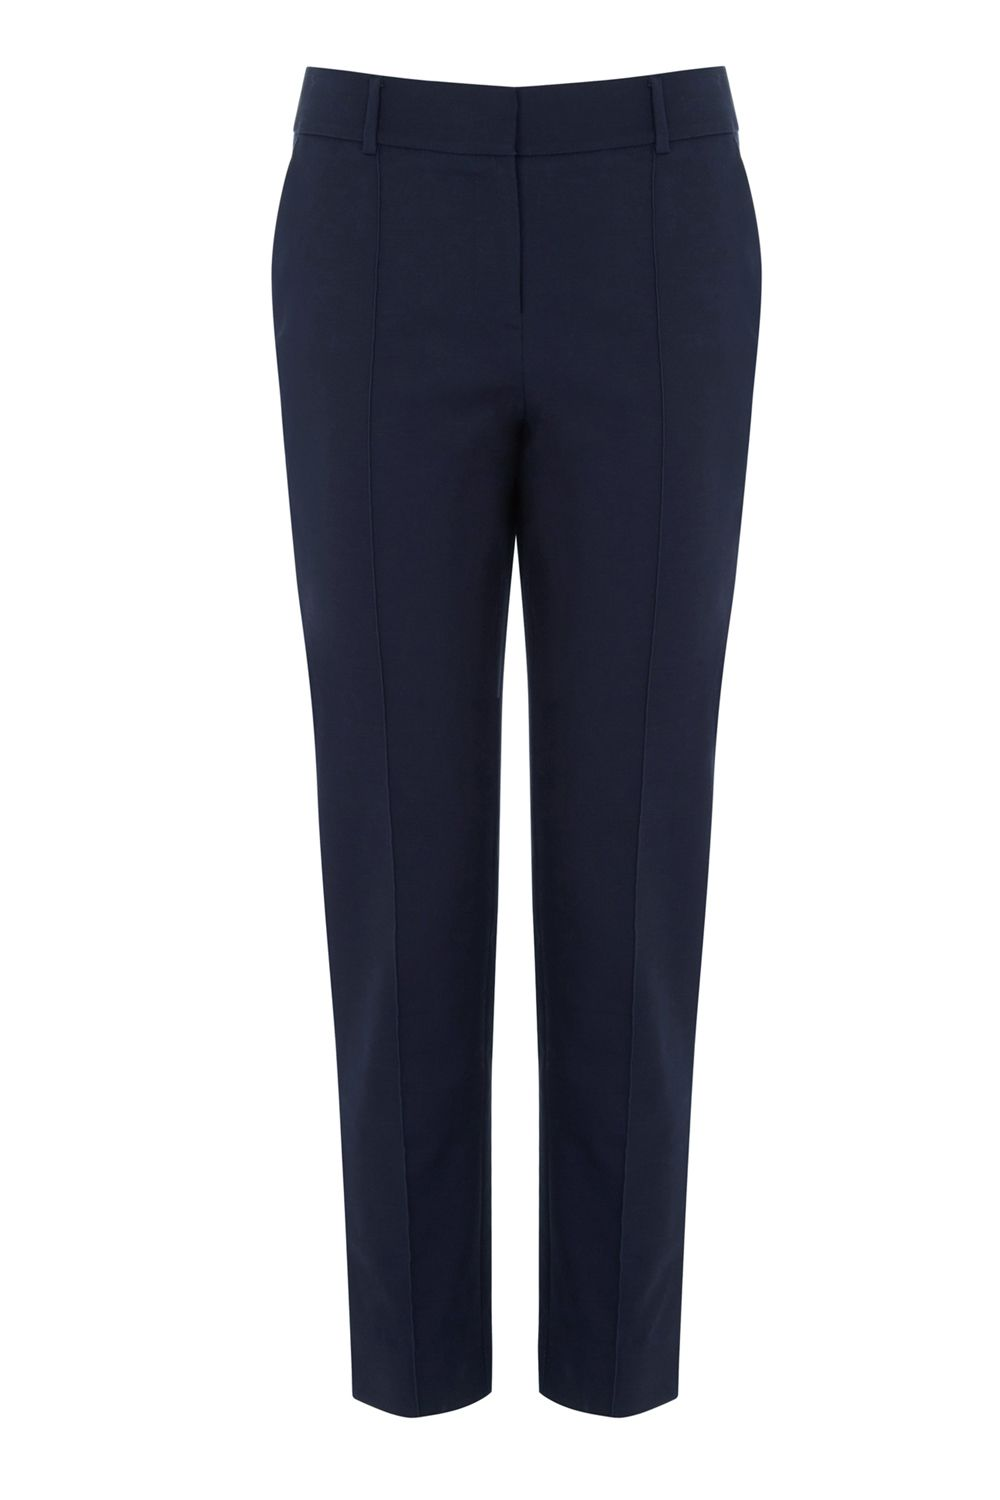 Warehouse Compact Cotton Trouser, Blue